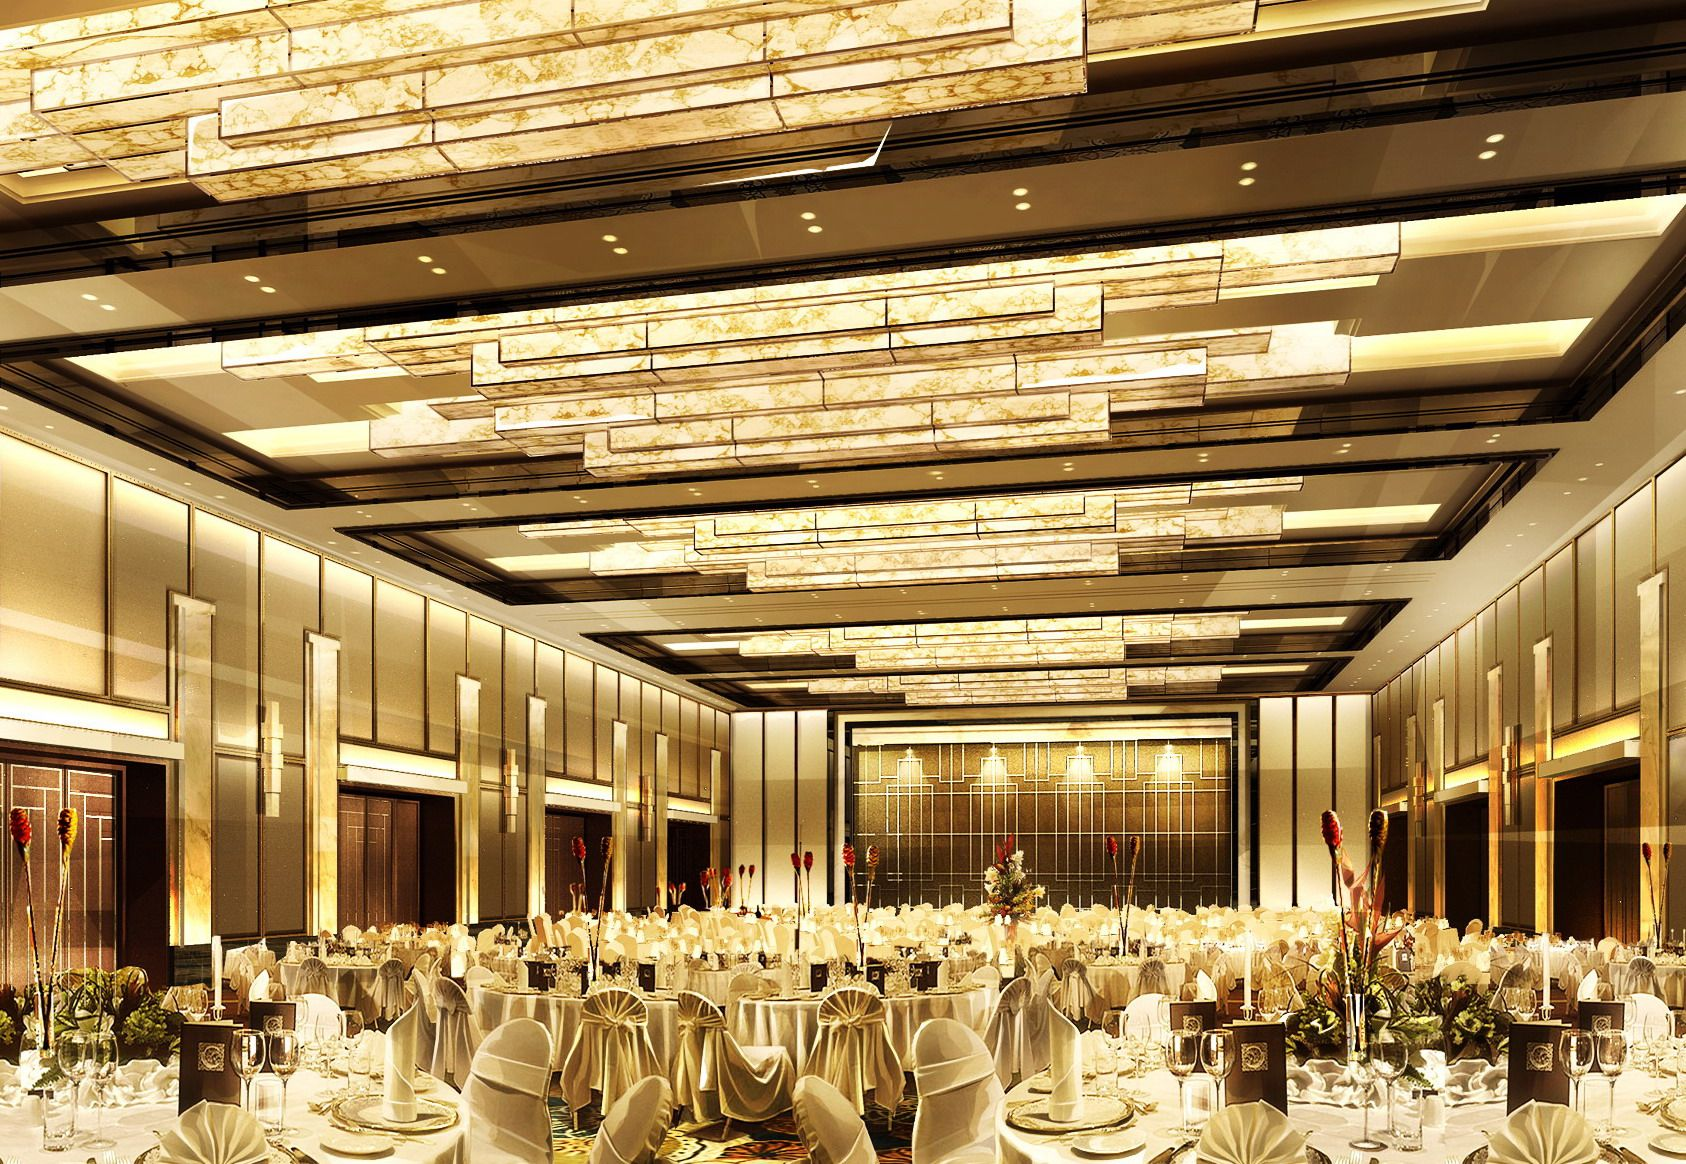 Eaton Luxe Grand Ballroom Rendering T L. L